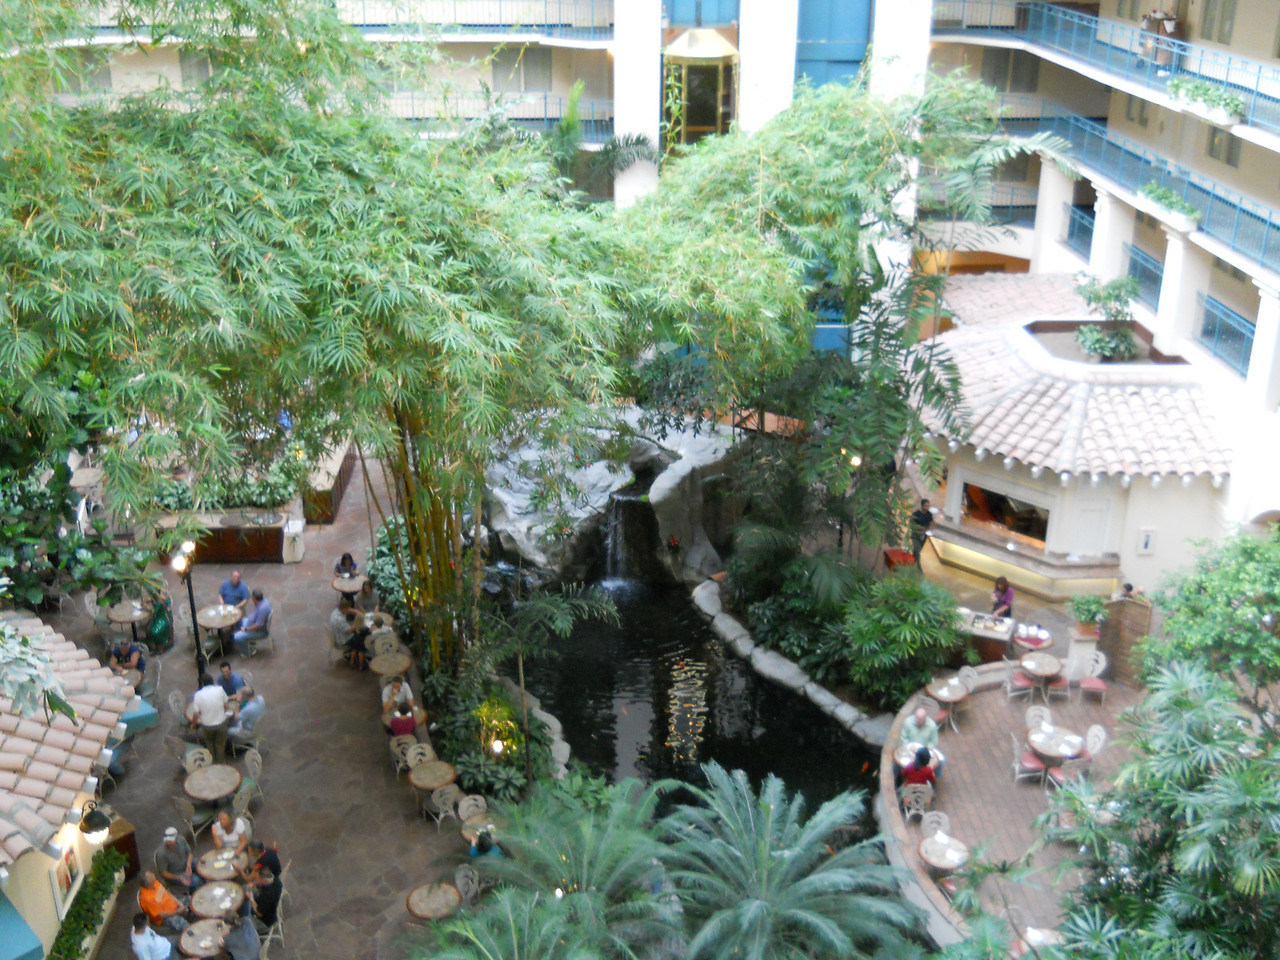 The lobby of our hotel, Embassy Suites